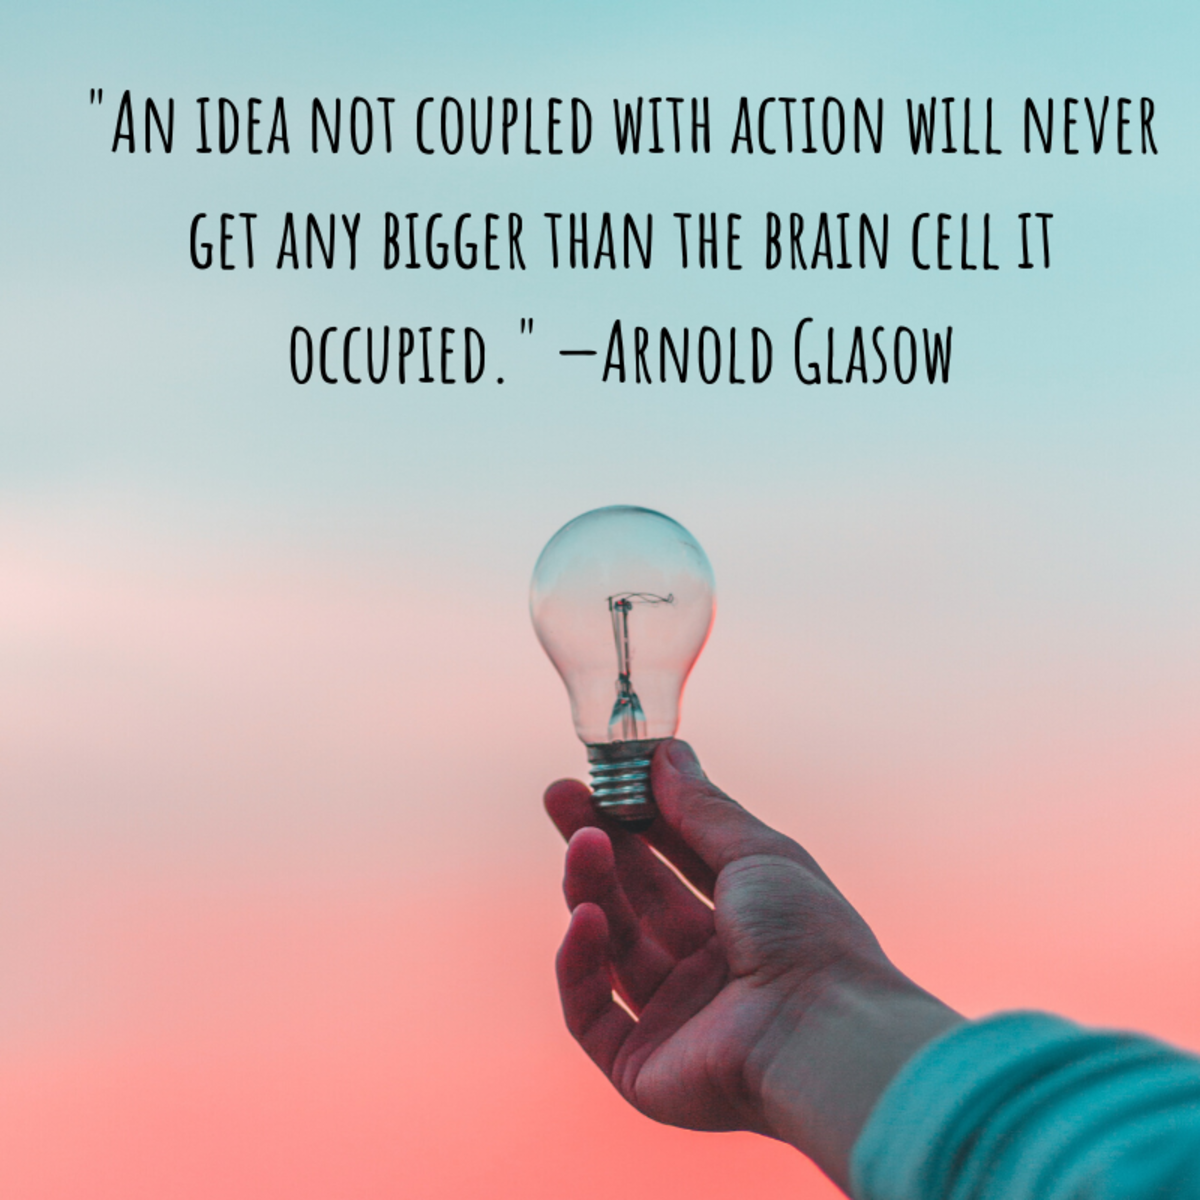 """An idea not coupled with action will never get any bigger than the brain cell it occupied."" —Arnold Glasow"